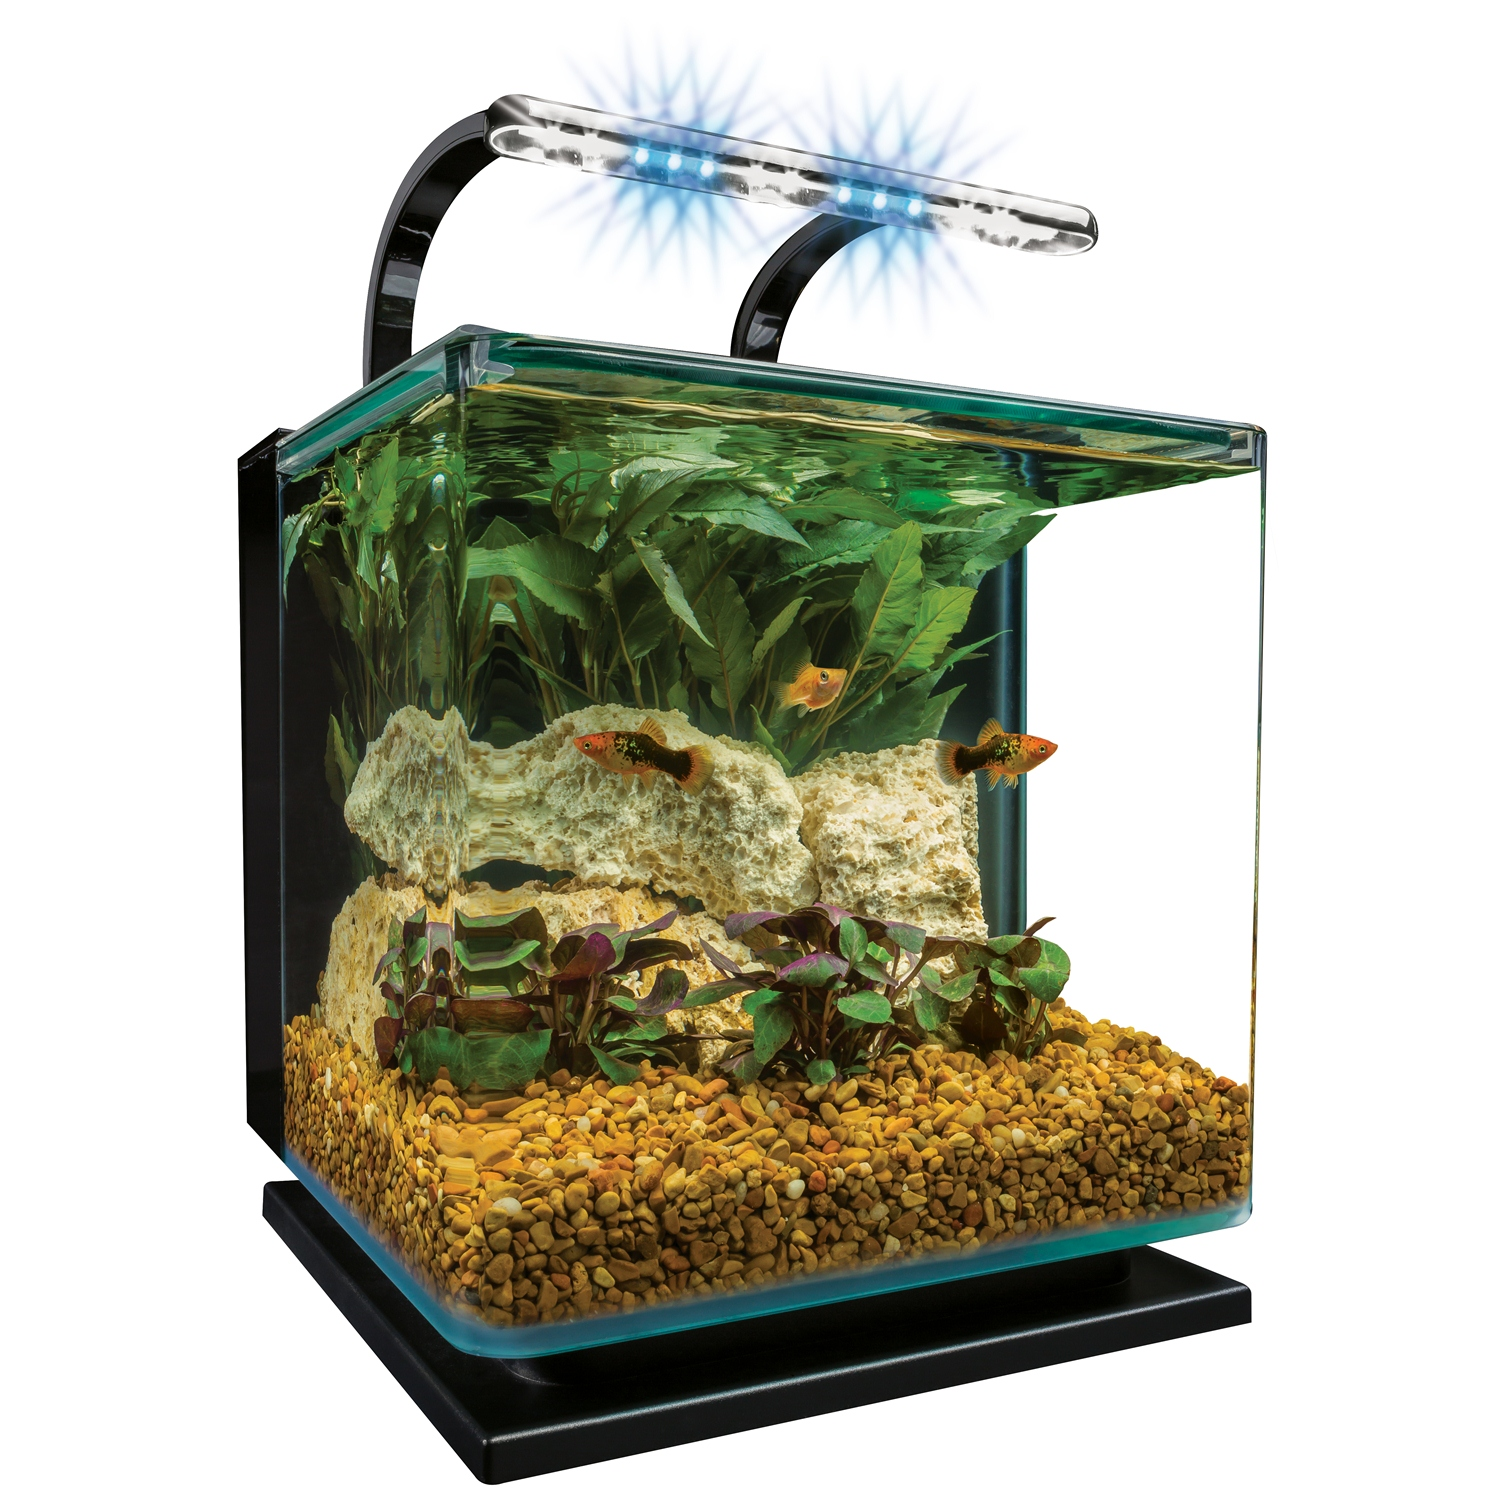 Aquarium fish 5 gallon tank - Marineland Contour 3